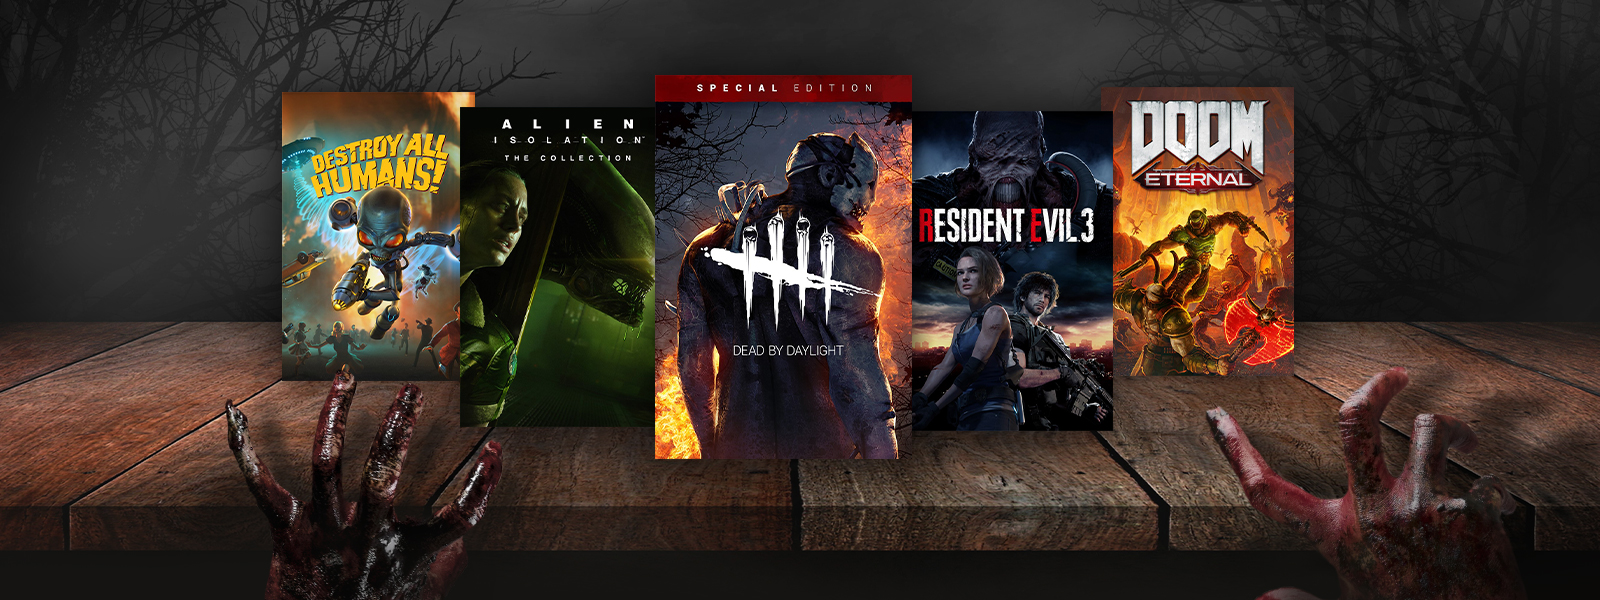 A collection of games that are part of the Shocktober Sale, including Destroy All Humans!, Resident Evil 3, and Doom Eternal.